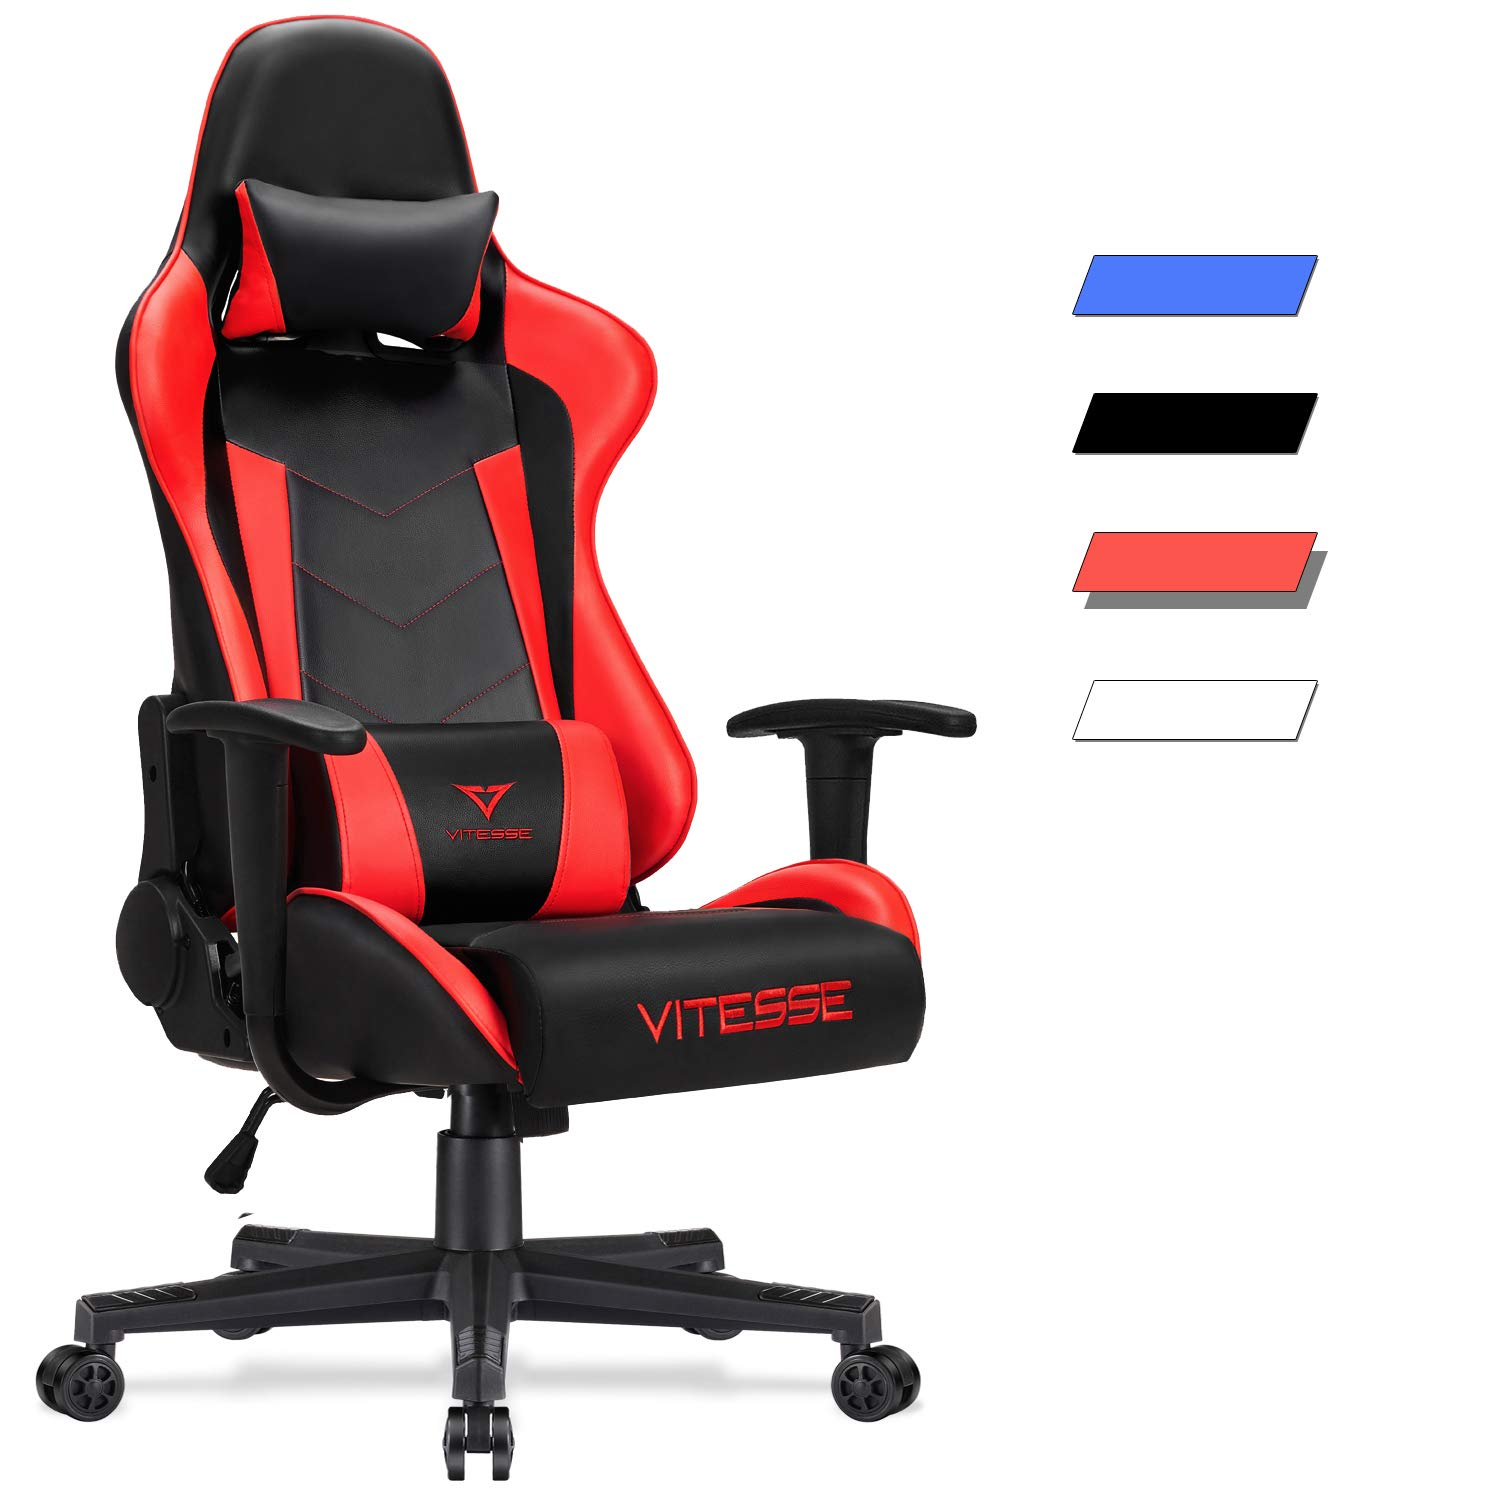 Vitesse Gaming Chair (Sillas Gaming) Video Gaming Chair Ergonomic Computer Desk Chair High Back Racing Style Comfortable Chair Swivel Executive Leather Chair with Lumbar Support and Headrest (Red-1) by Waleaf